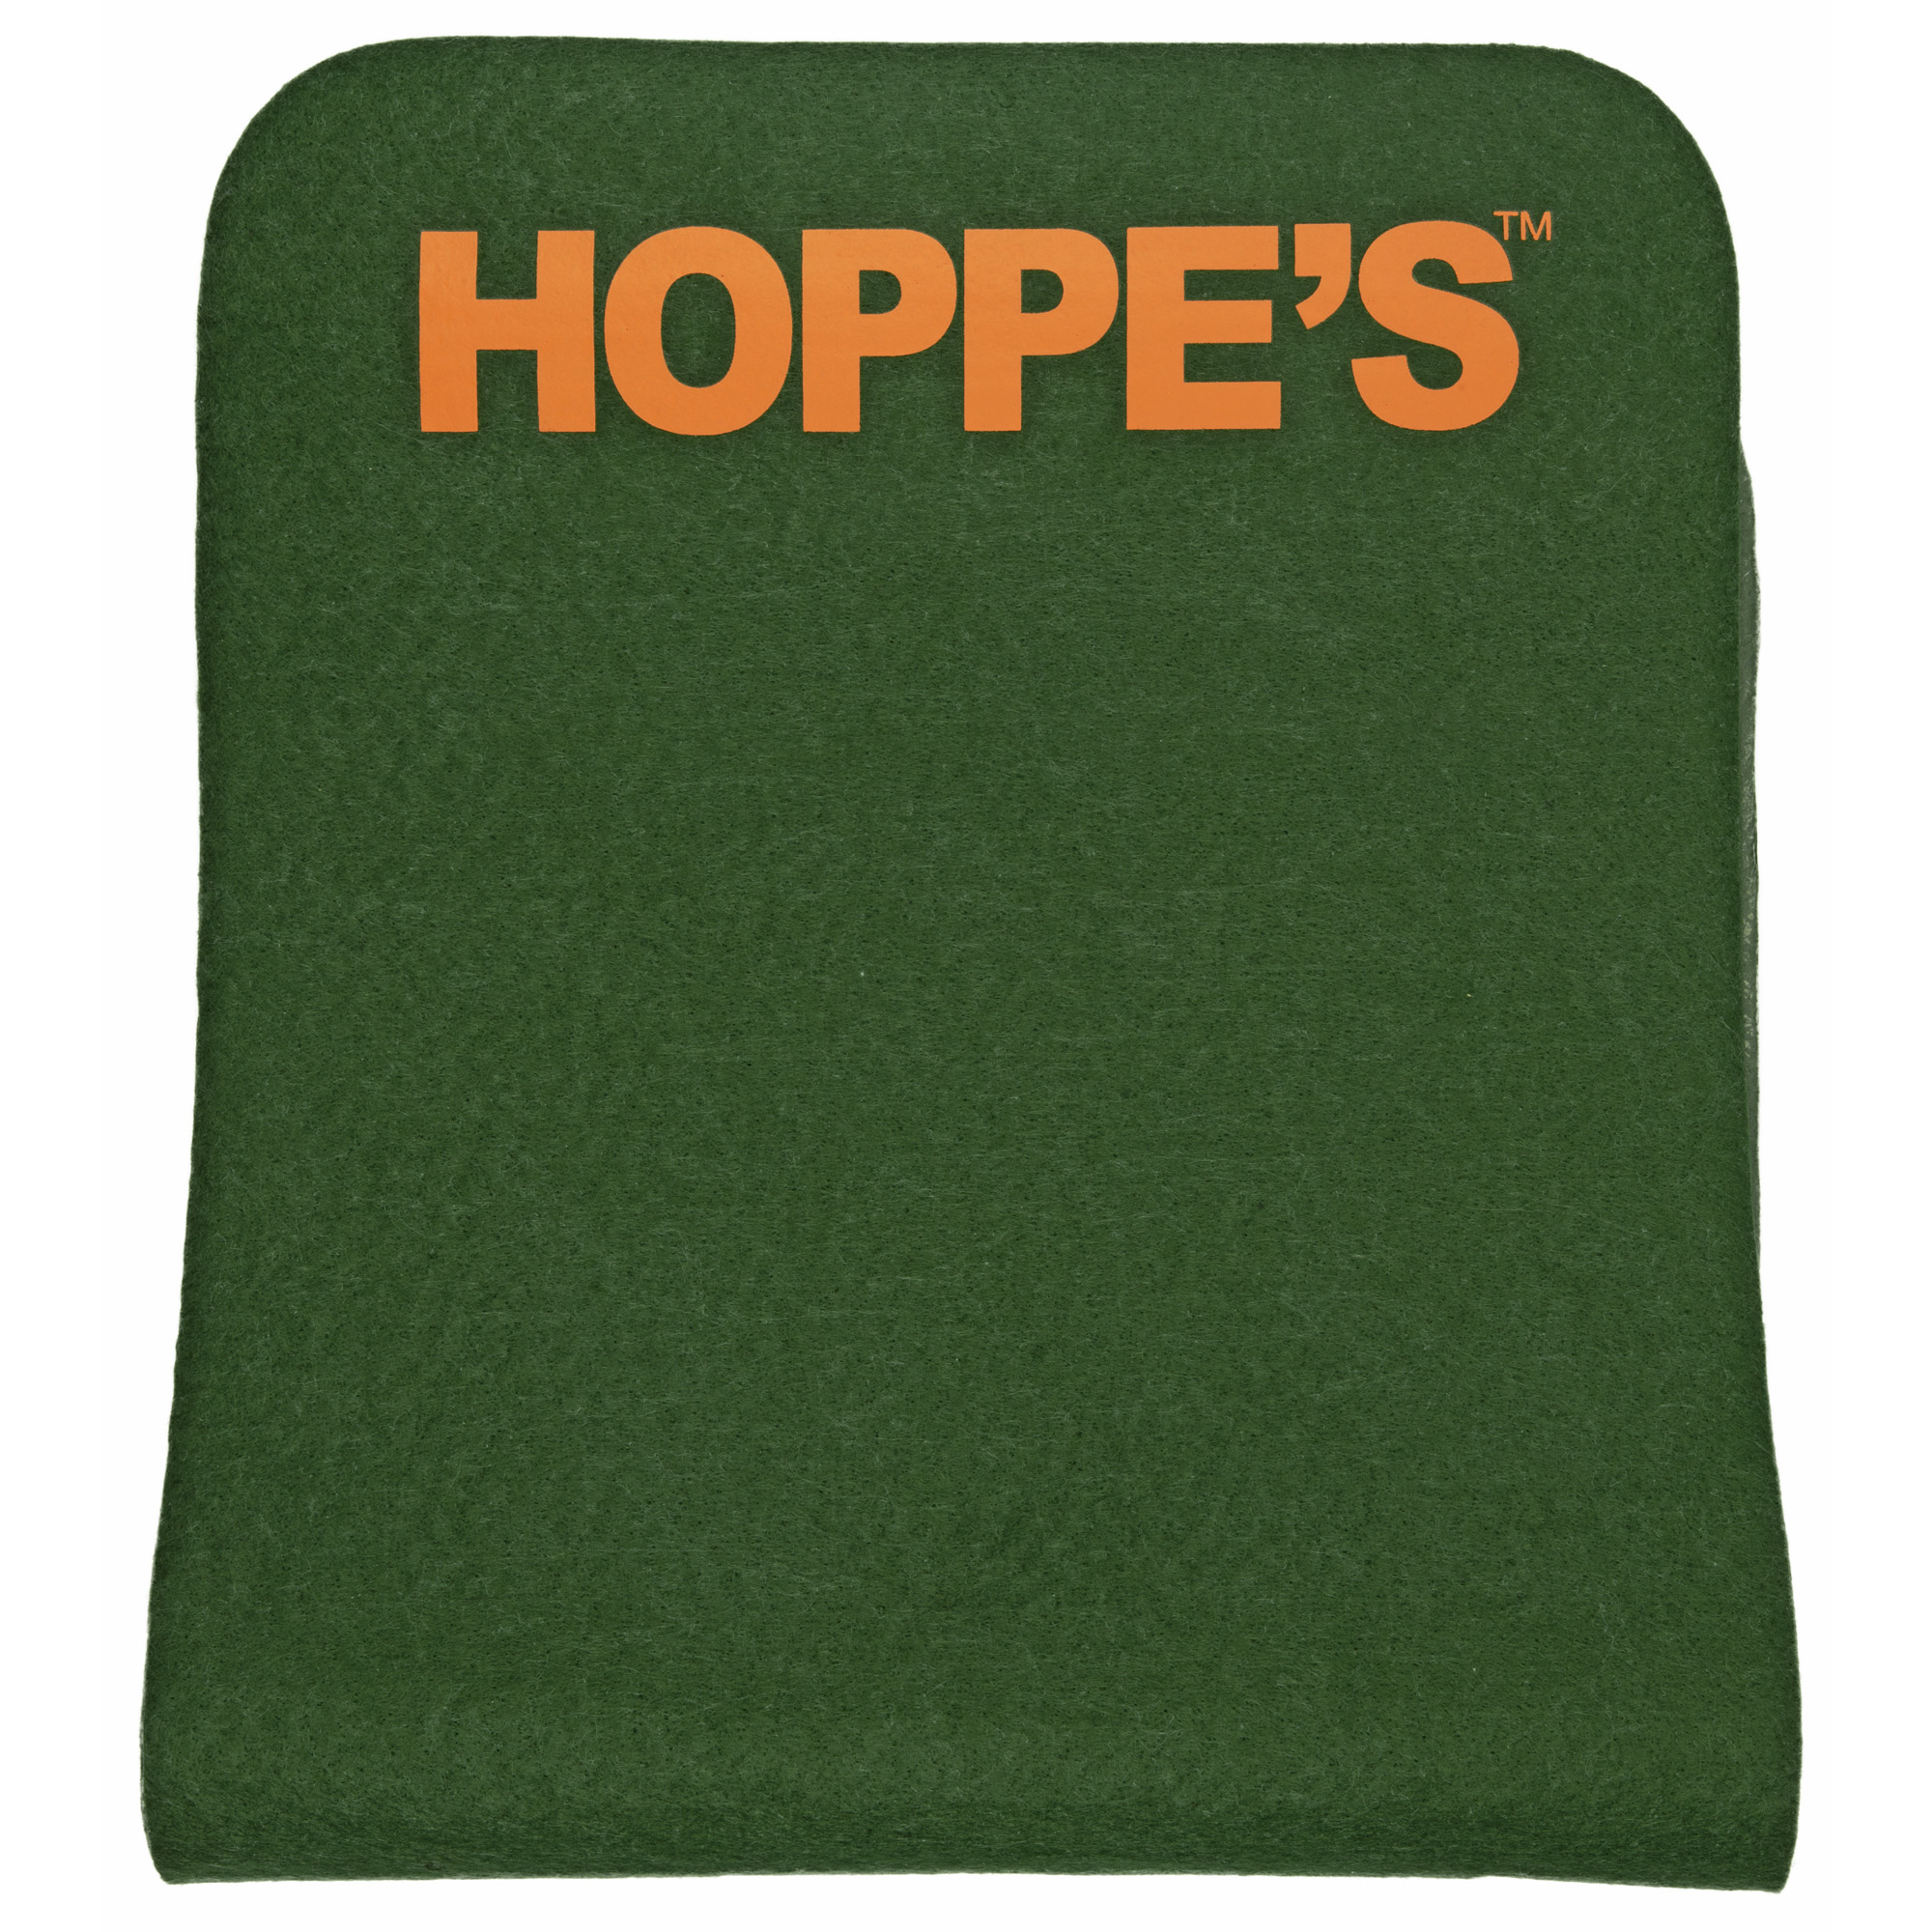 Hoppes Cleaning Mat